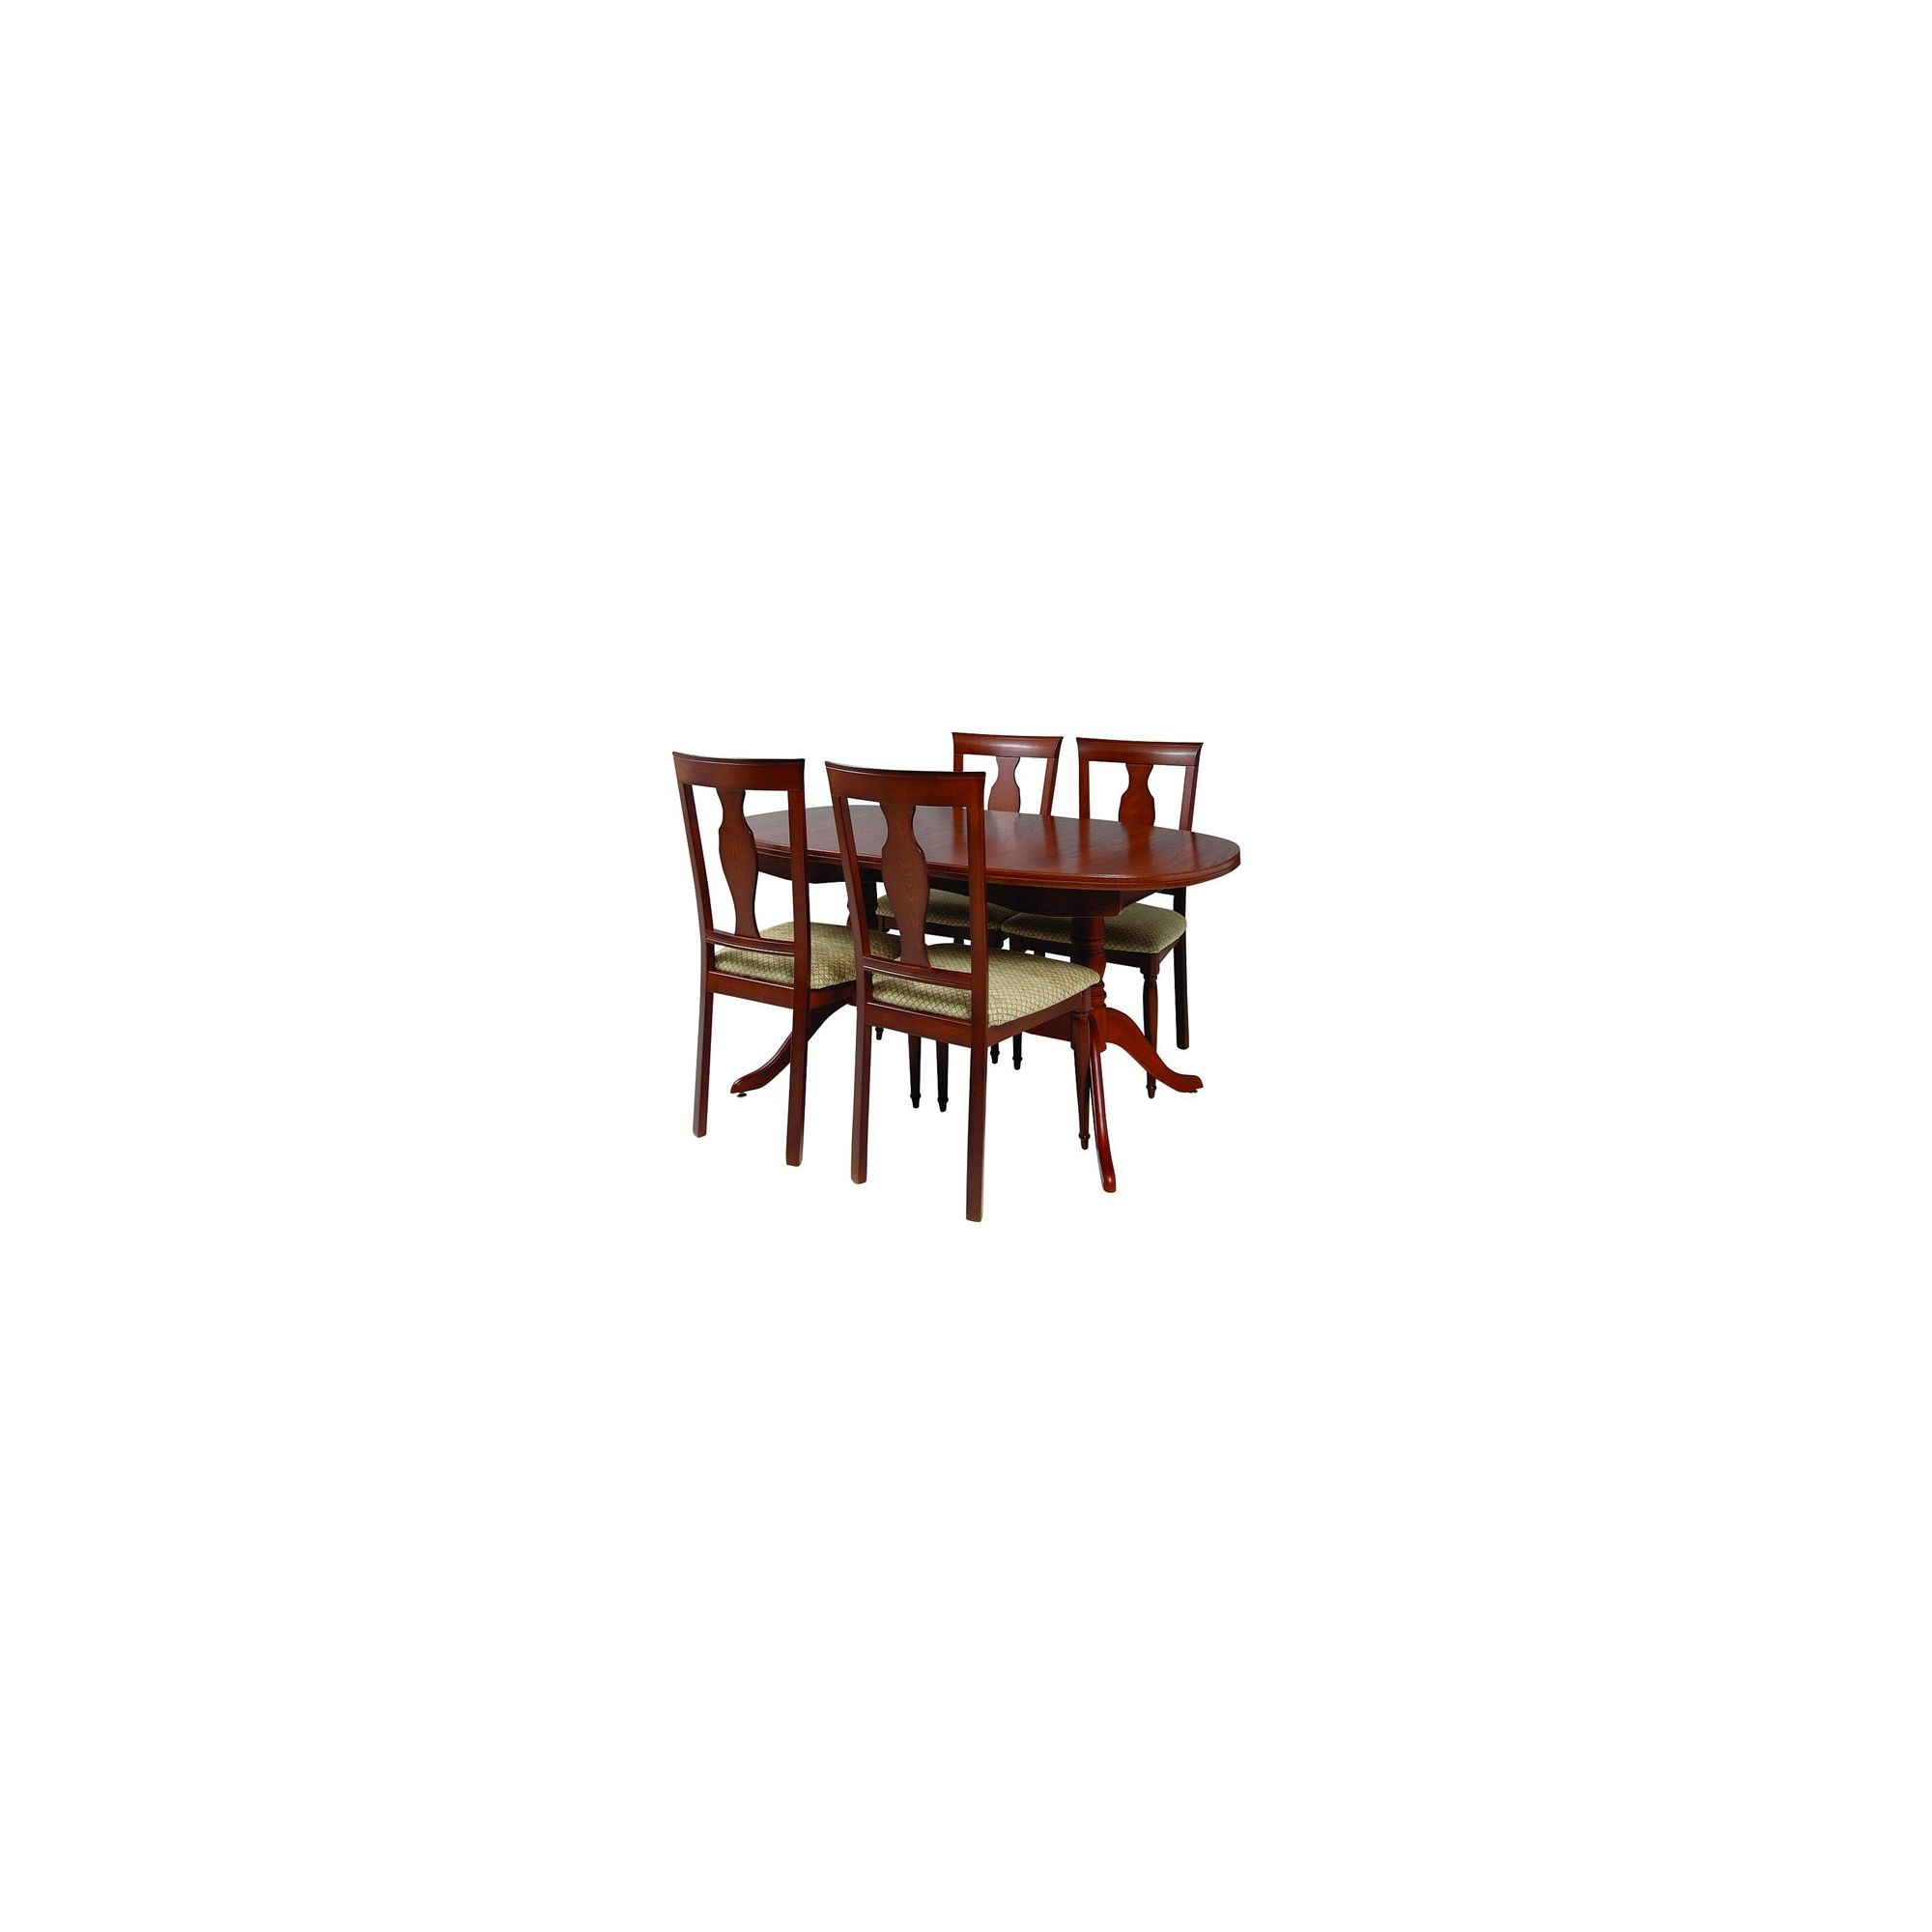 Caxton Lincoln Twin Pedestal 4 Chair Extending Dining Set in Cherry - Green at Tesco Direct